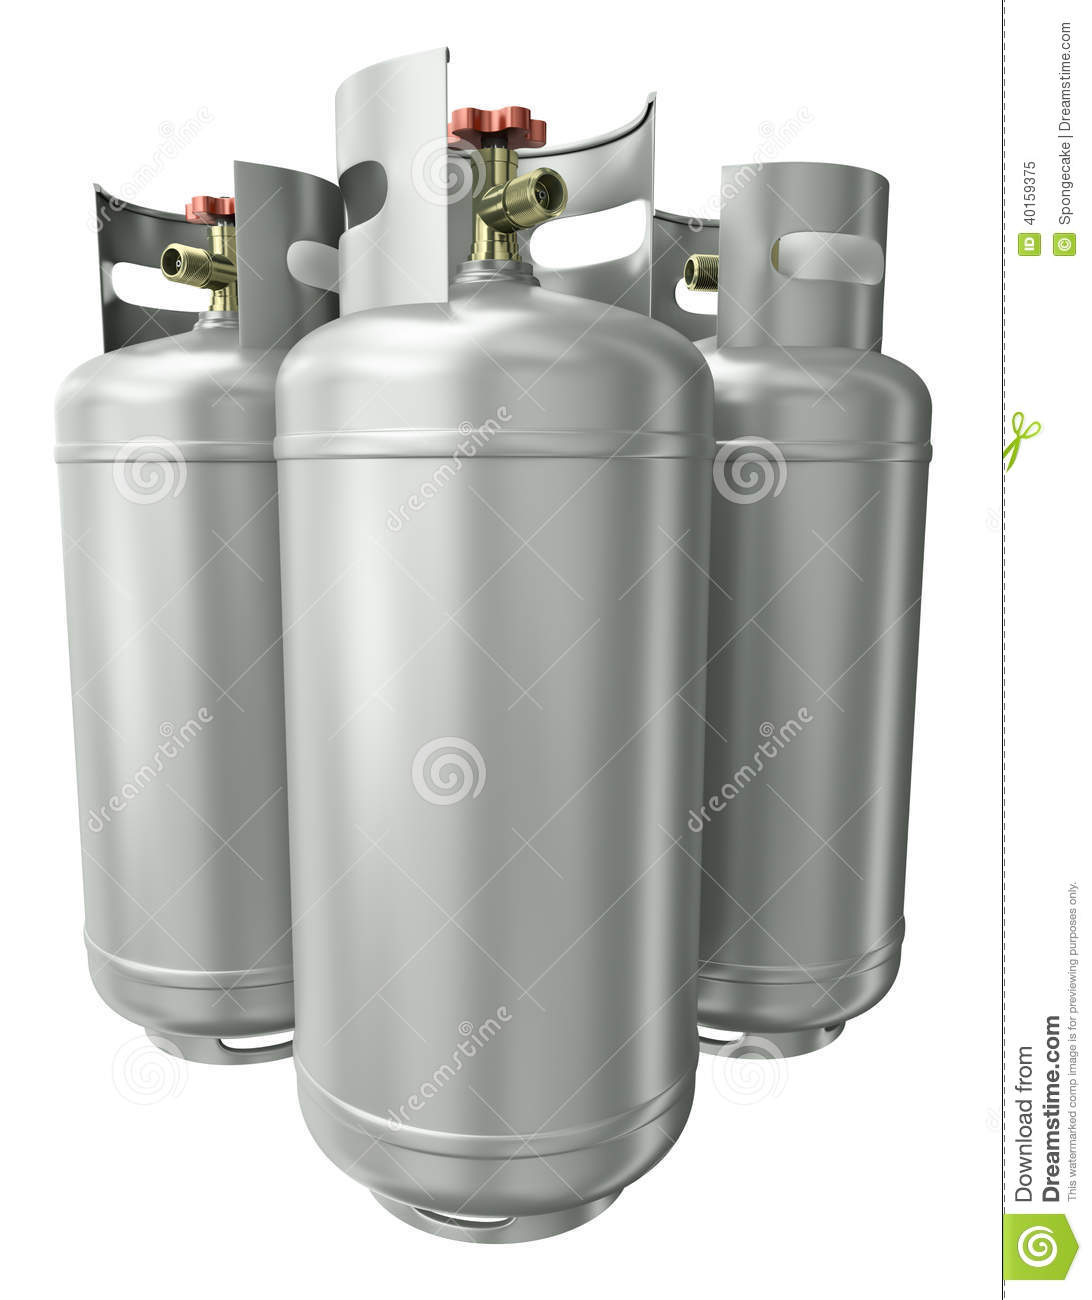 Drie gascontainers